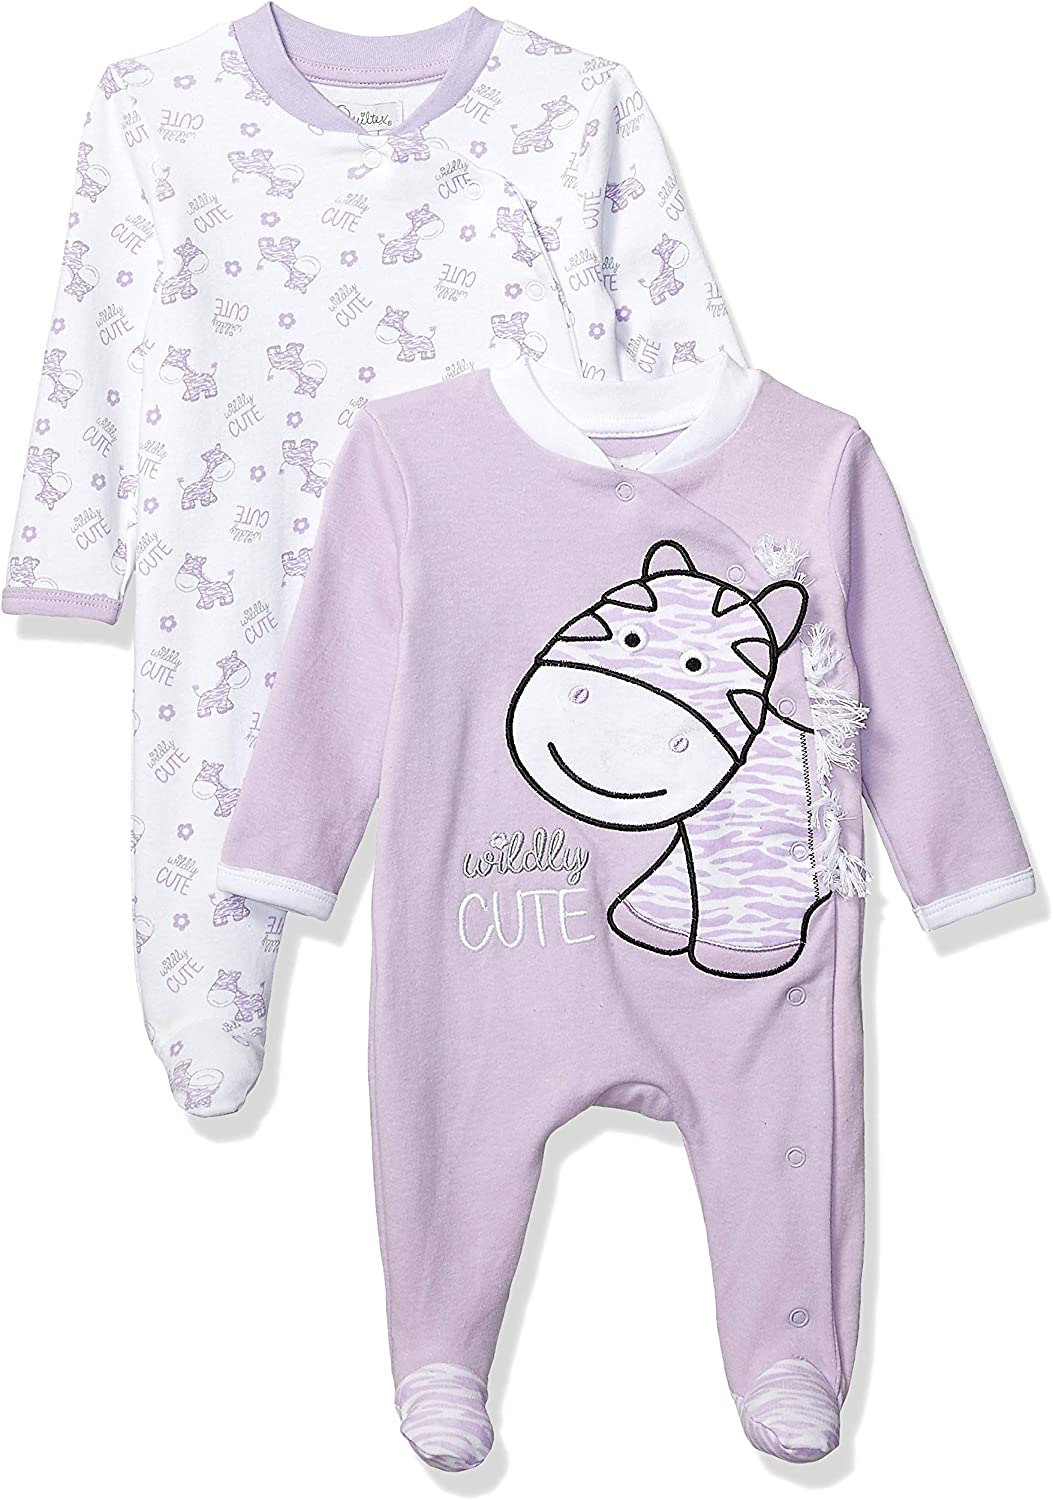 Quiltex Girls' Toddler Wildy Print Cute Novelty Coverall 2 Pack Set